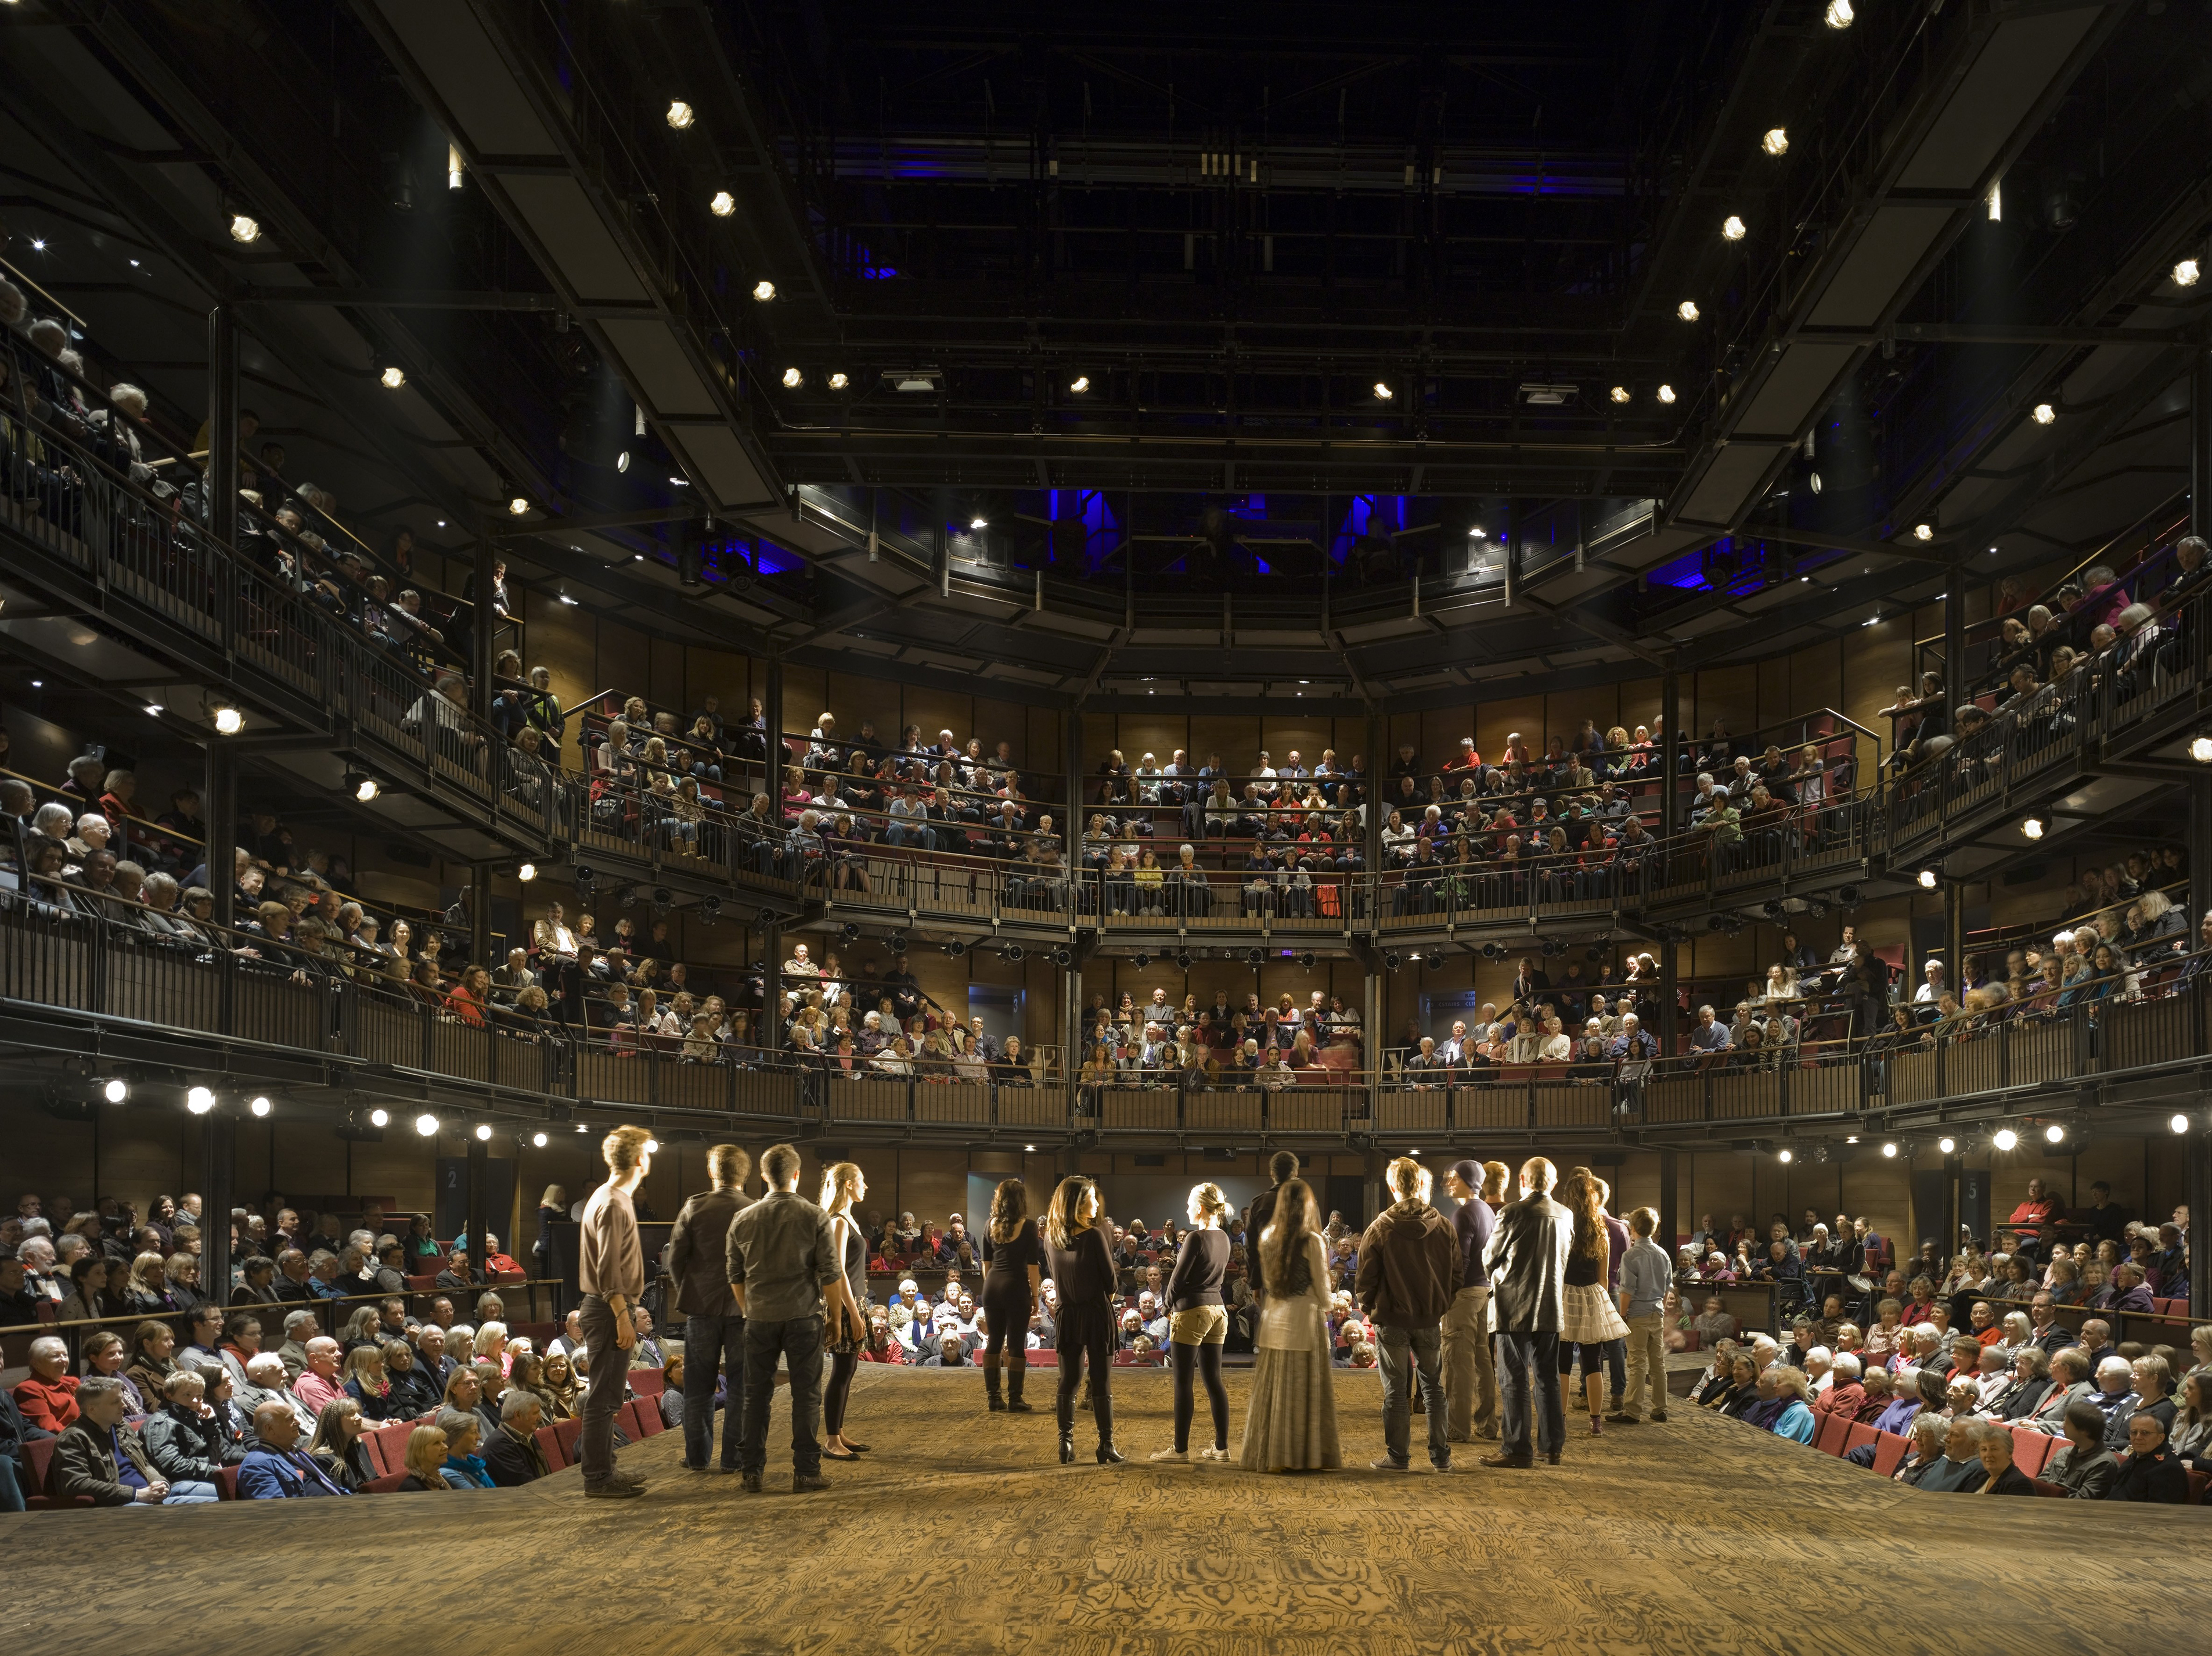 Back stage engineering keeps Shakespeare's magic ever-enthralling